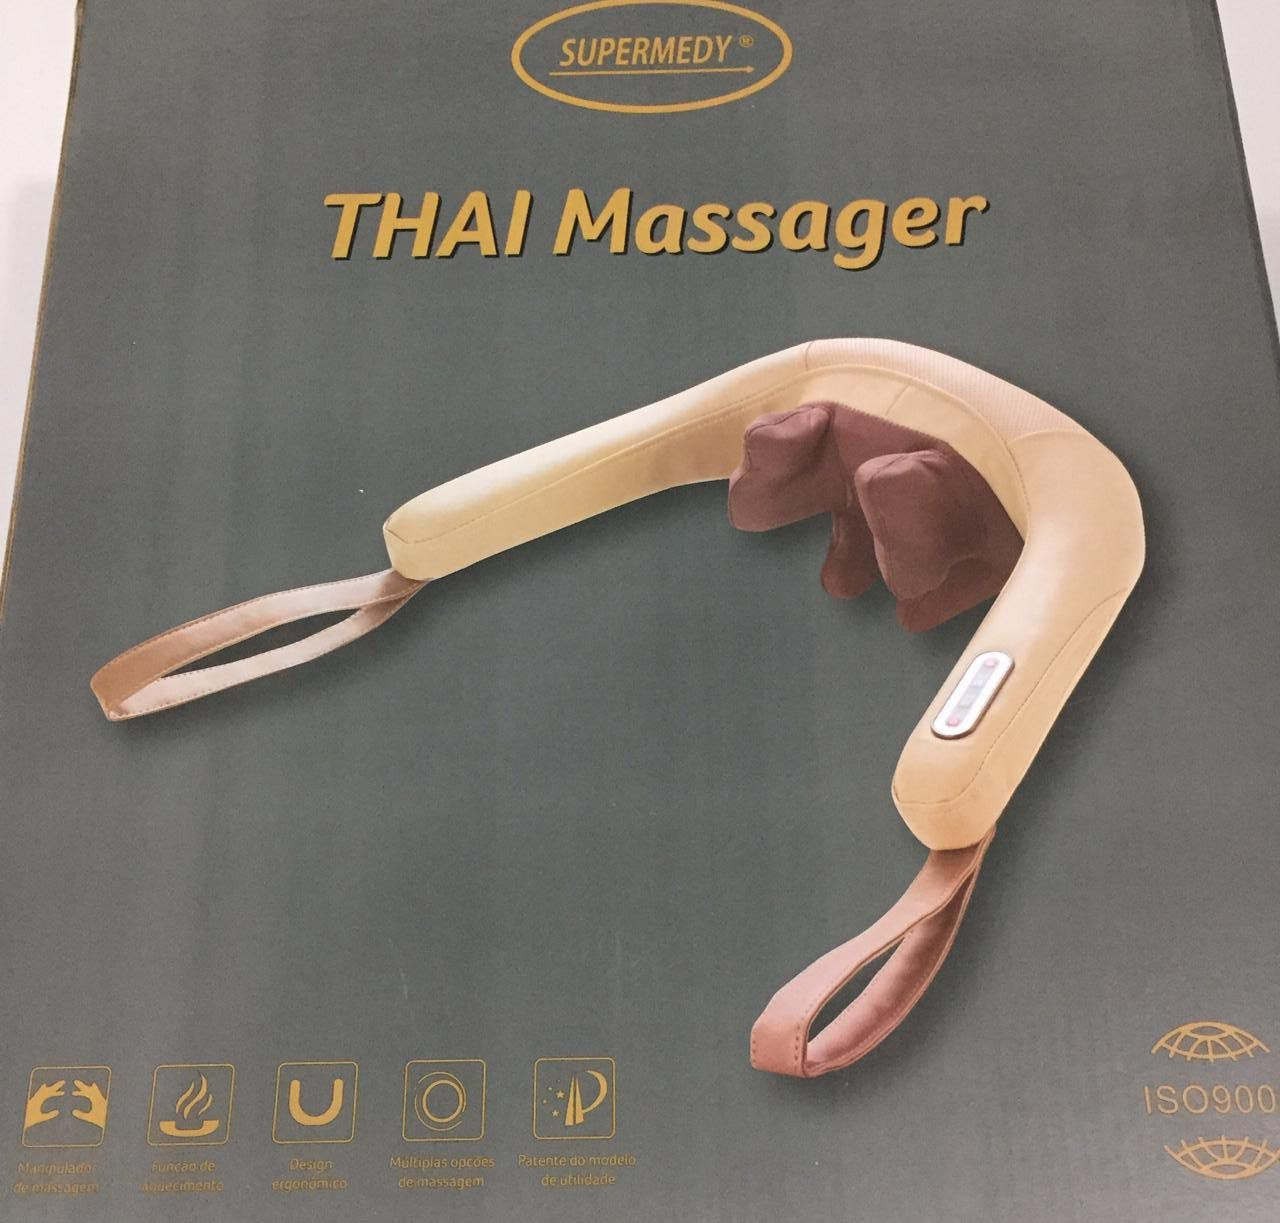 Massageador Thai Massager Supermedy